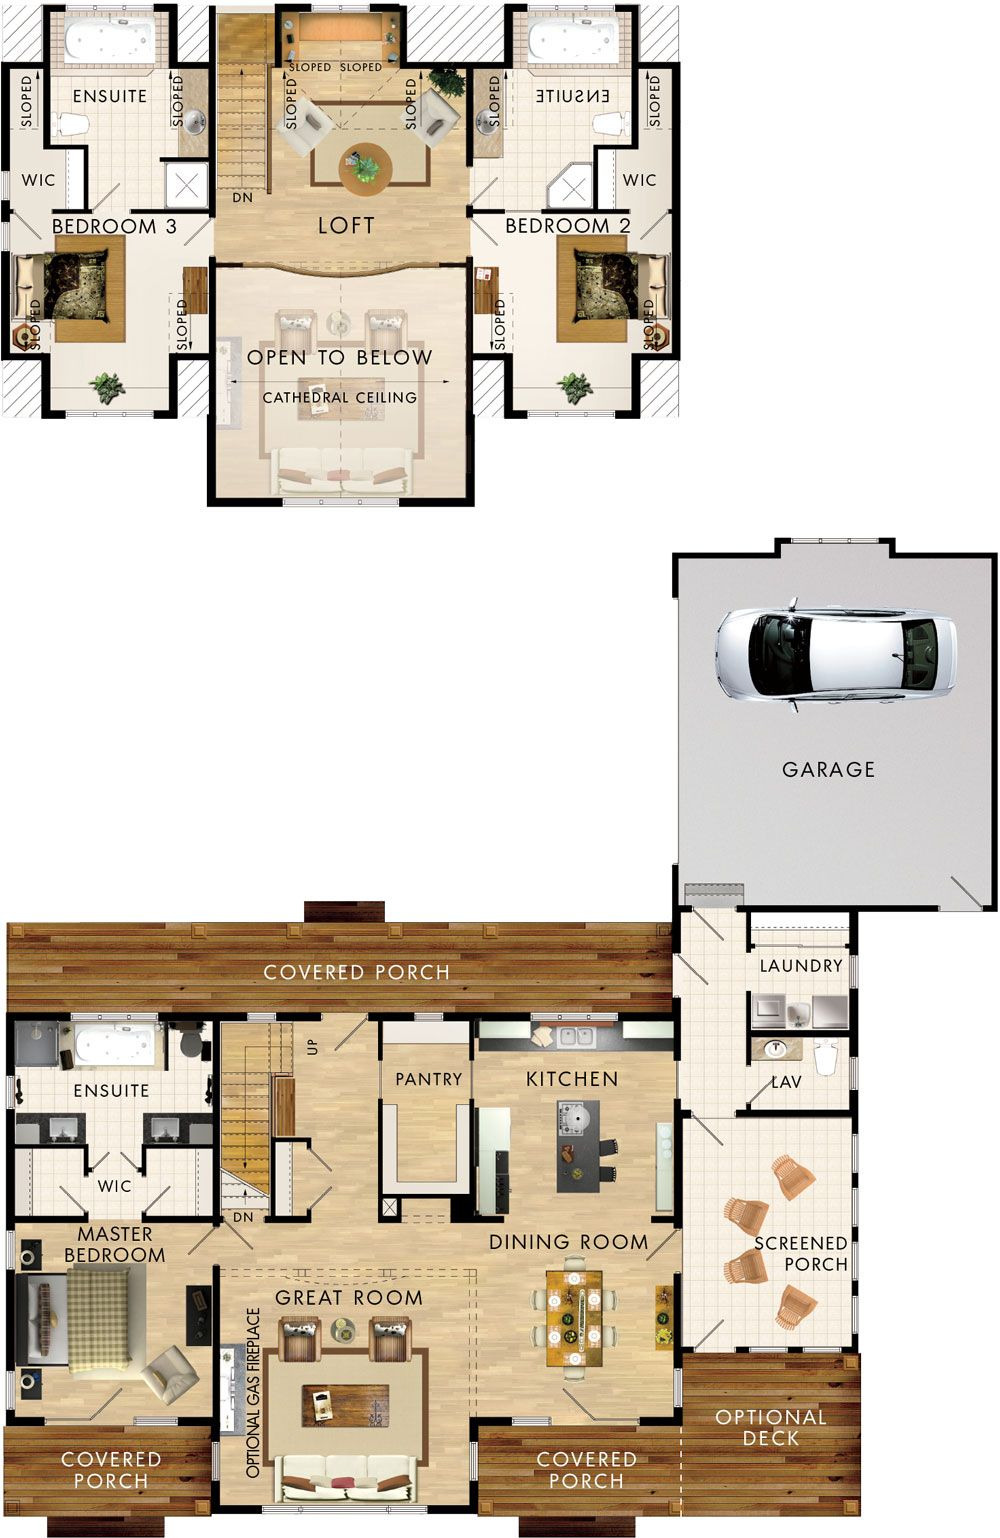 Lake House Plans with Loft Inspirational This Main Level but Put Lav where Pantry is In 2020